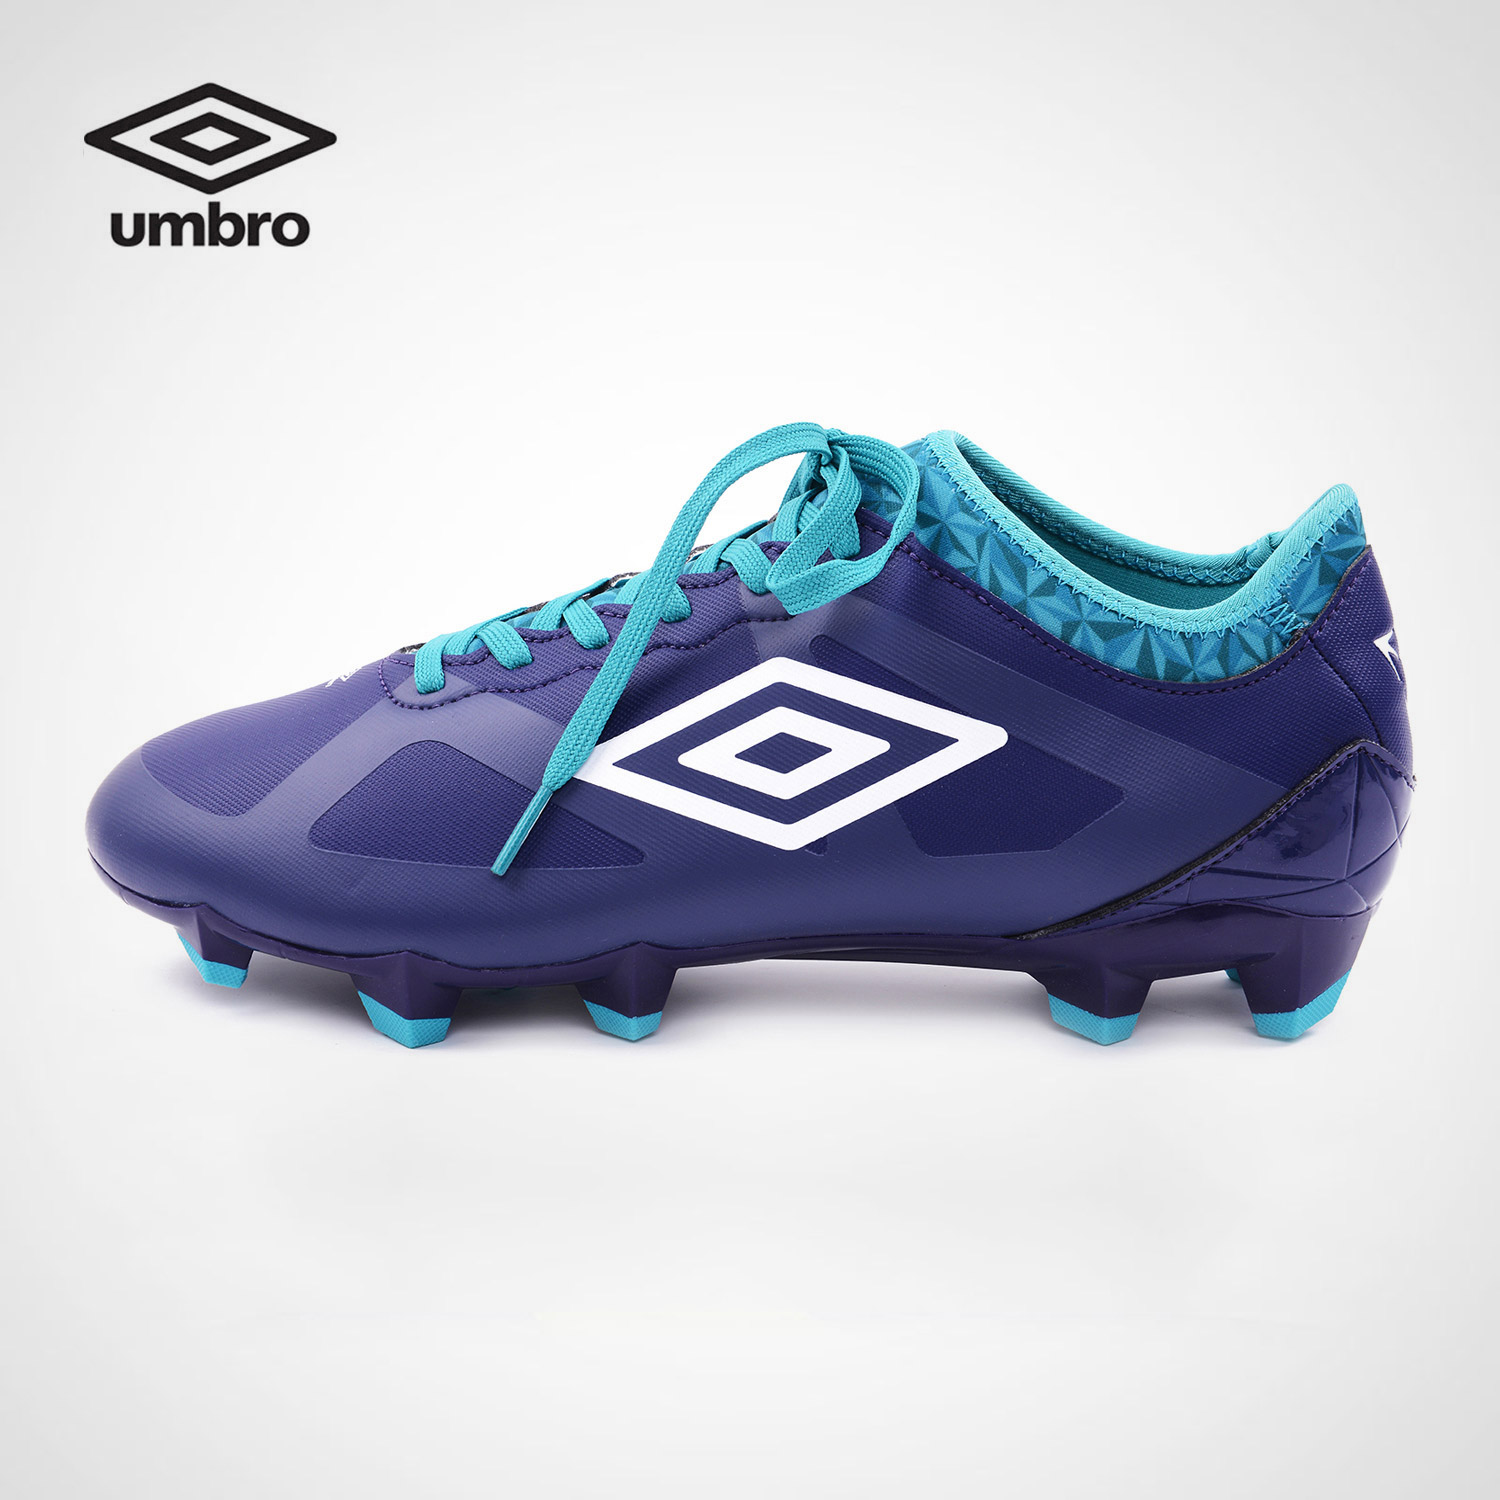 umbro soccer shoes